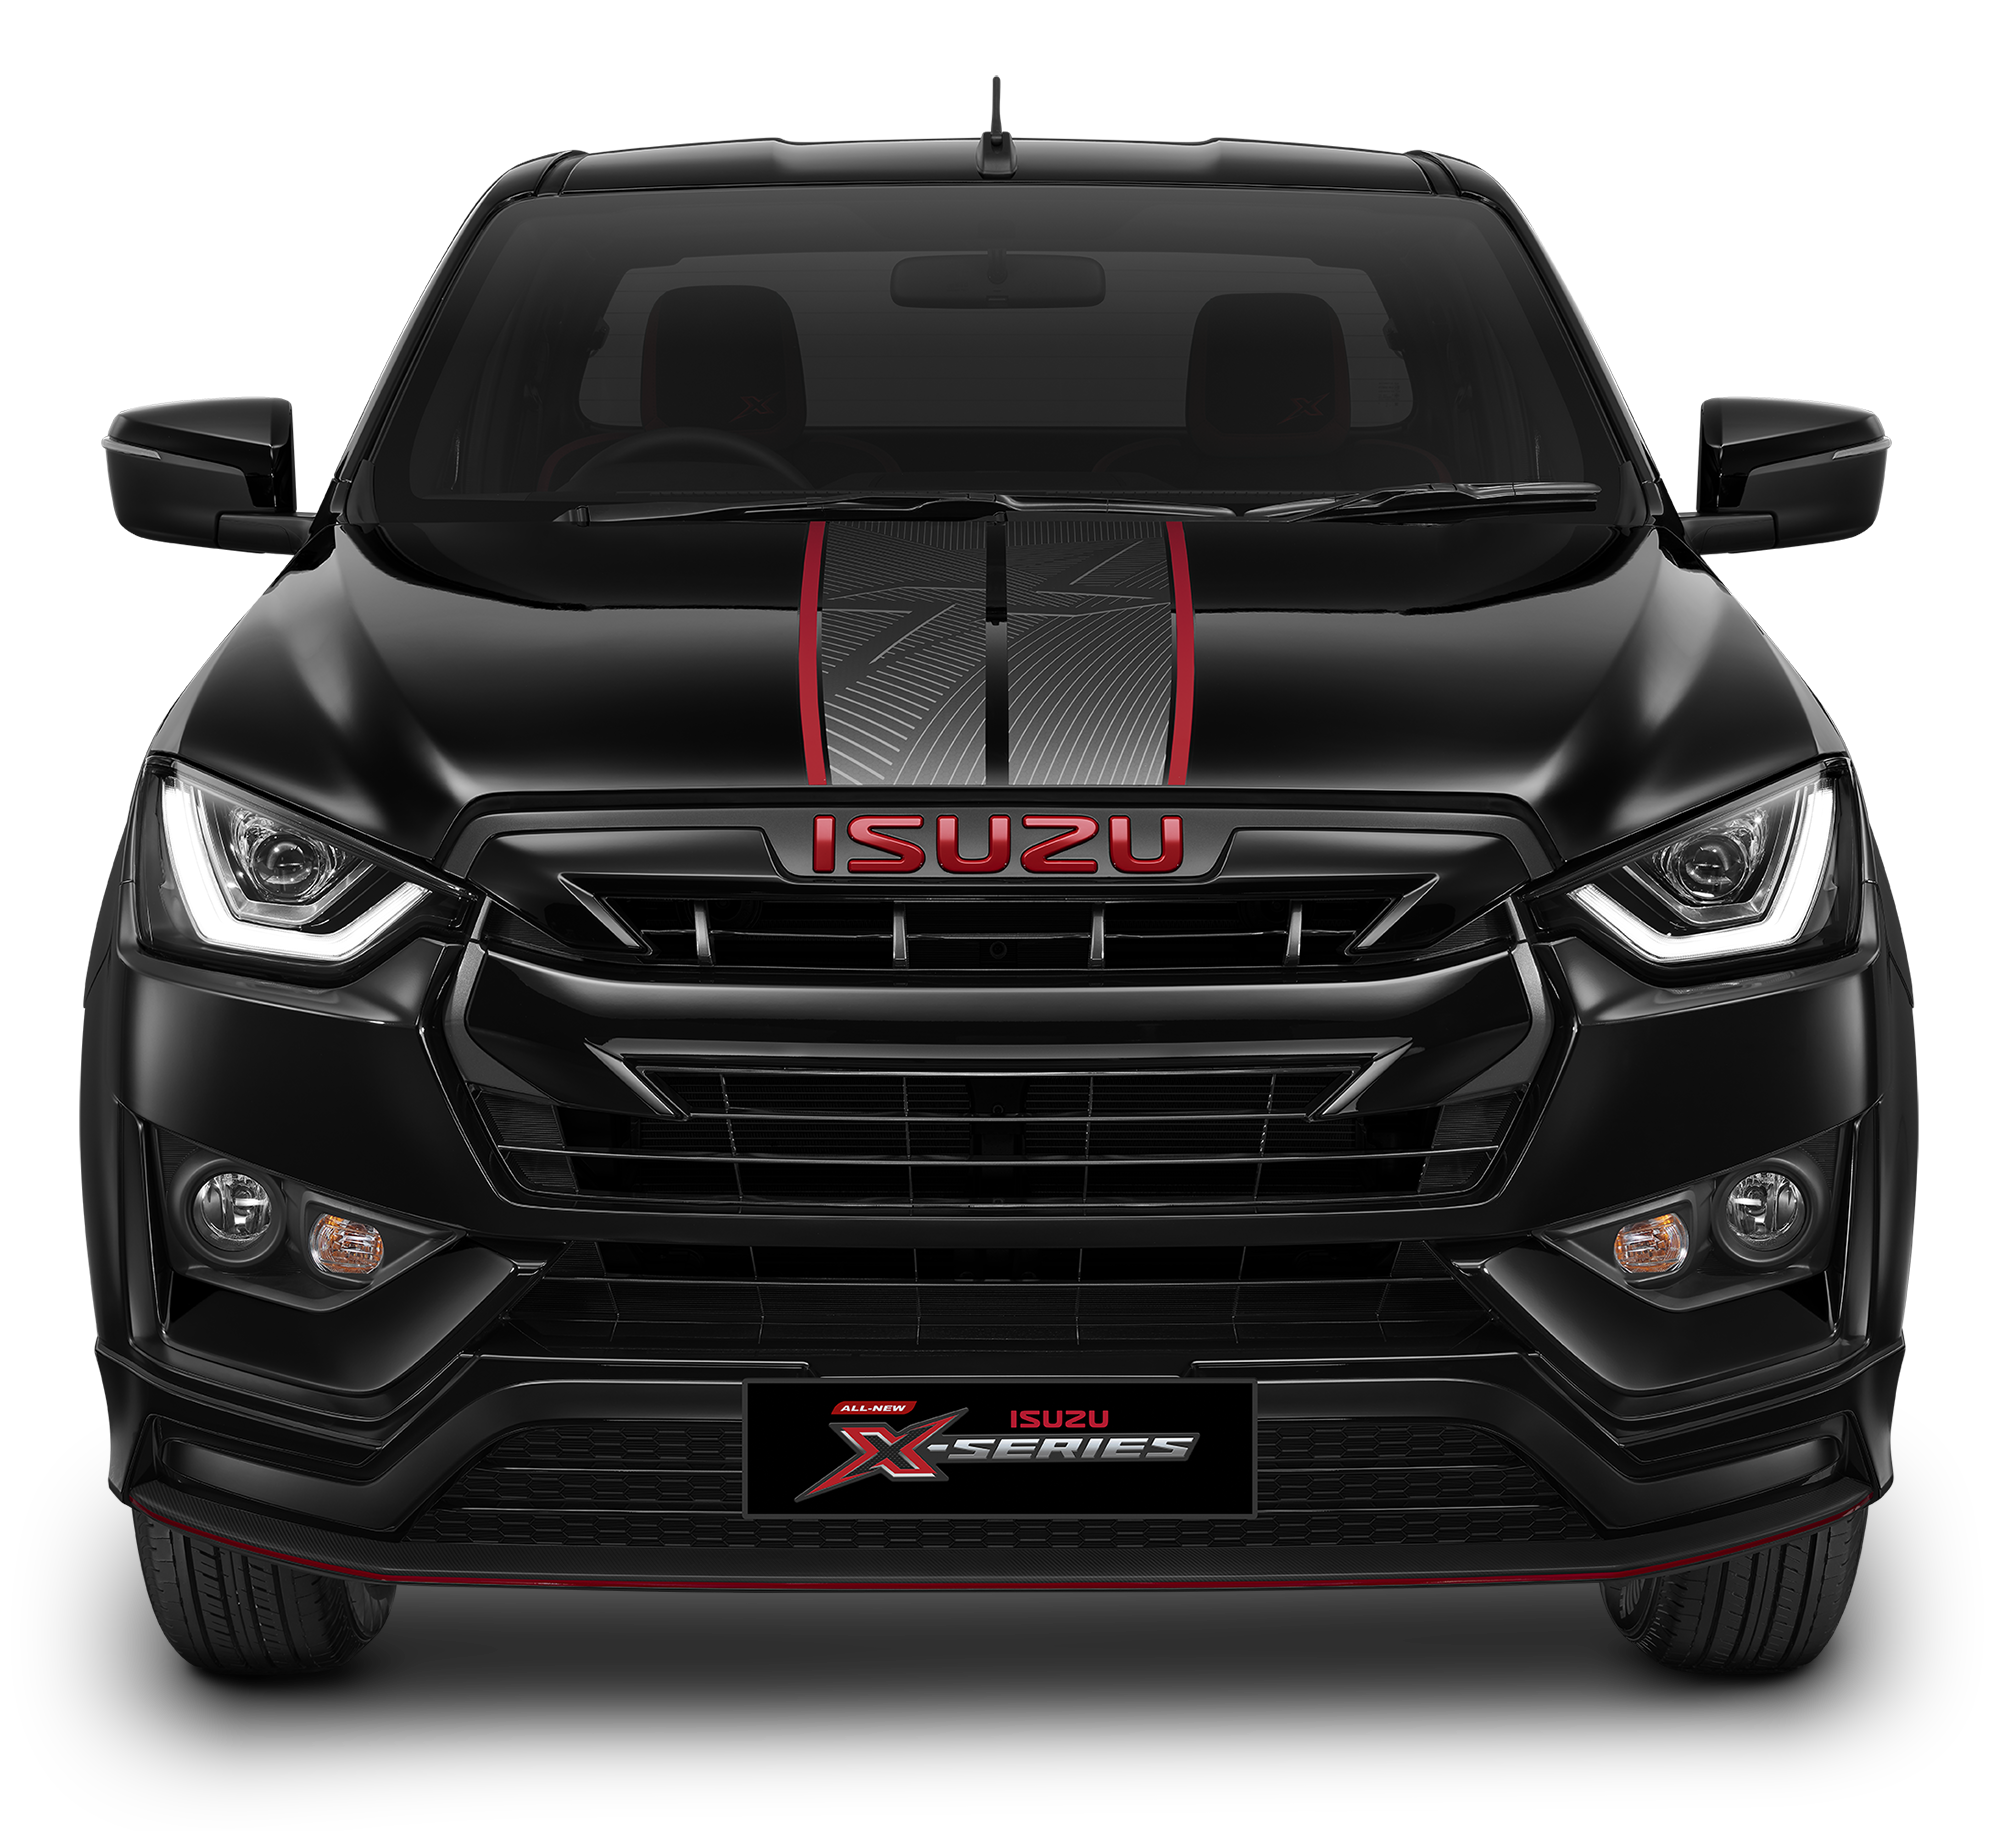 2021 isuzu D-MAX X-Series Speed